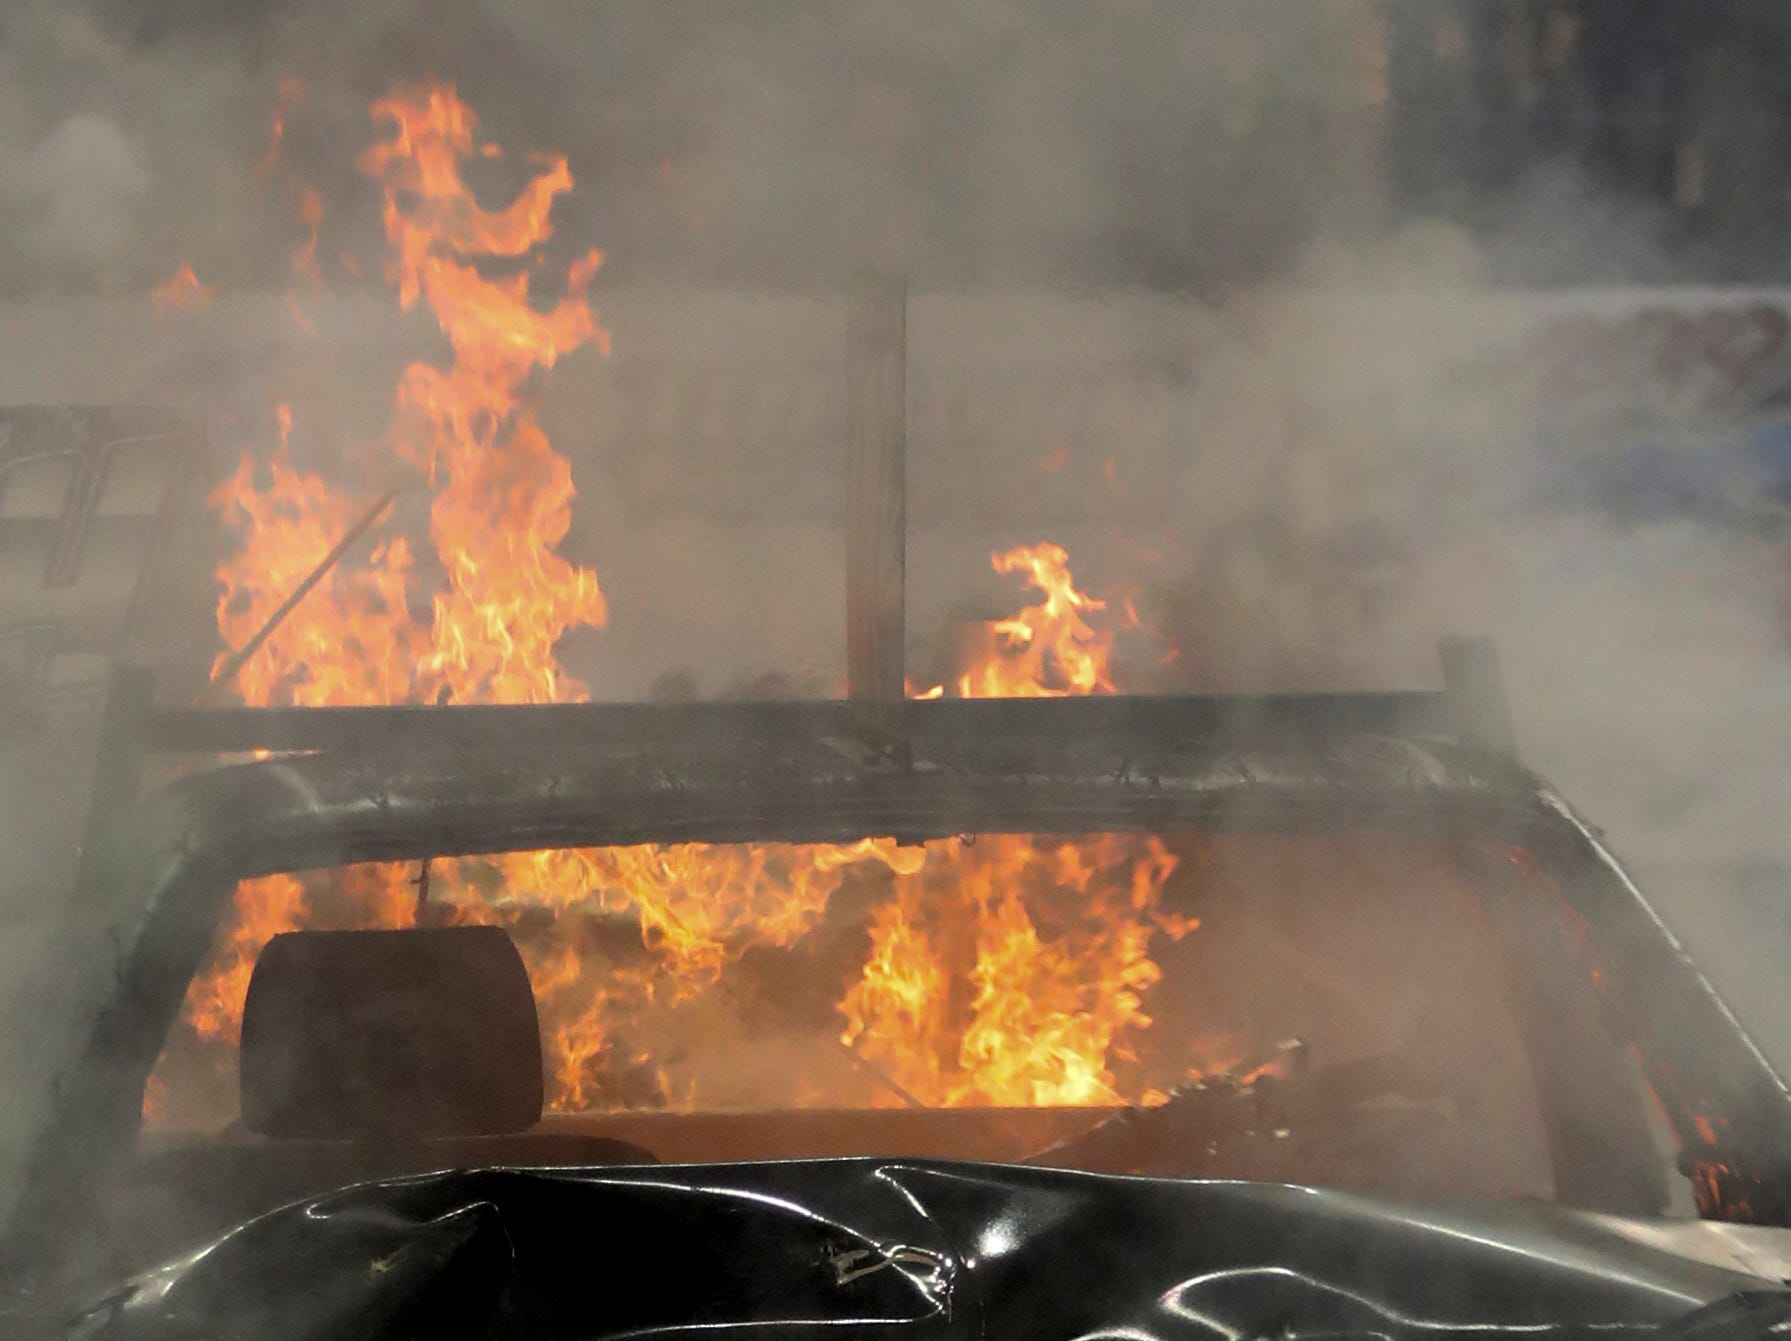 Tim Haniszewski's car goes up in flames at the 4th annual Bluegrass Bash Demolition Derby in Freedom Hall on March 23.